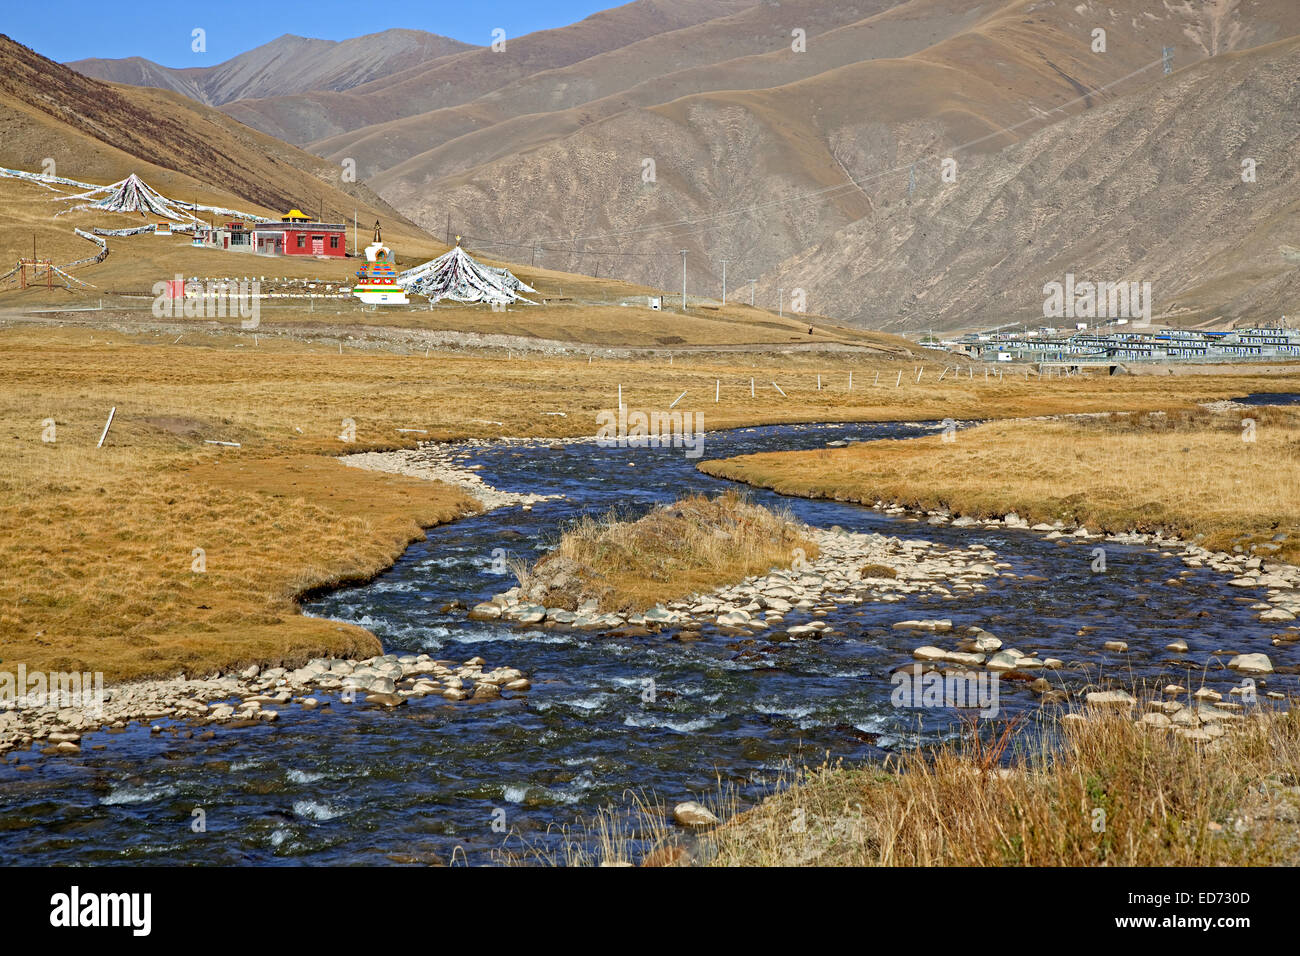 Remote Tibetan monastery along the Sichuan-Tibet Highway, Qinghai province, China - Stock Image